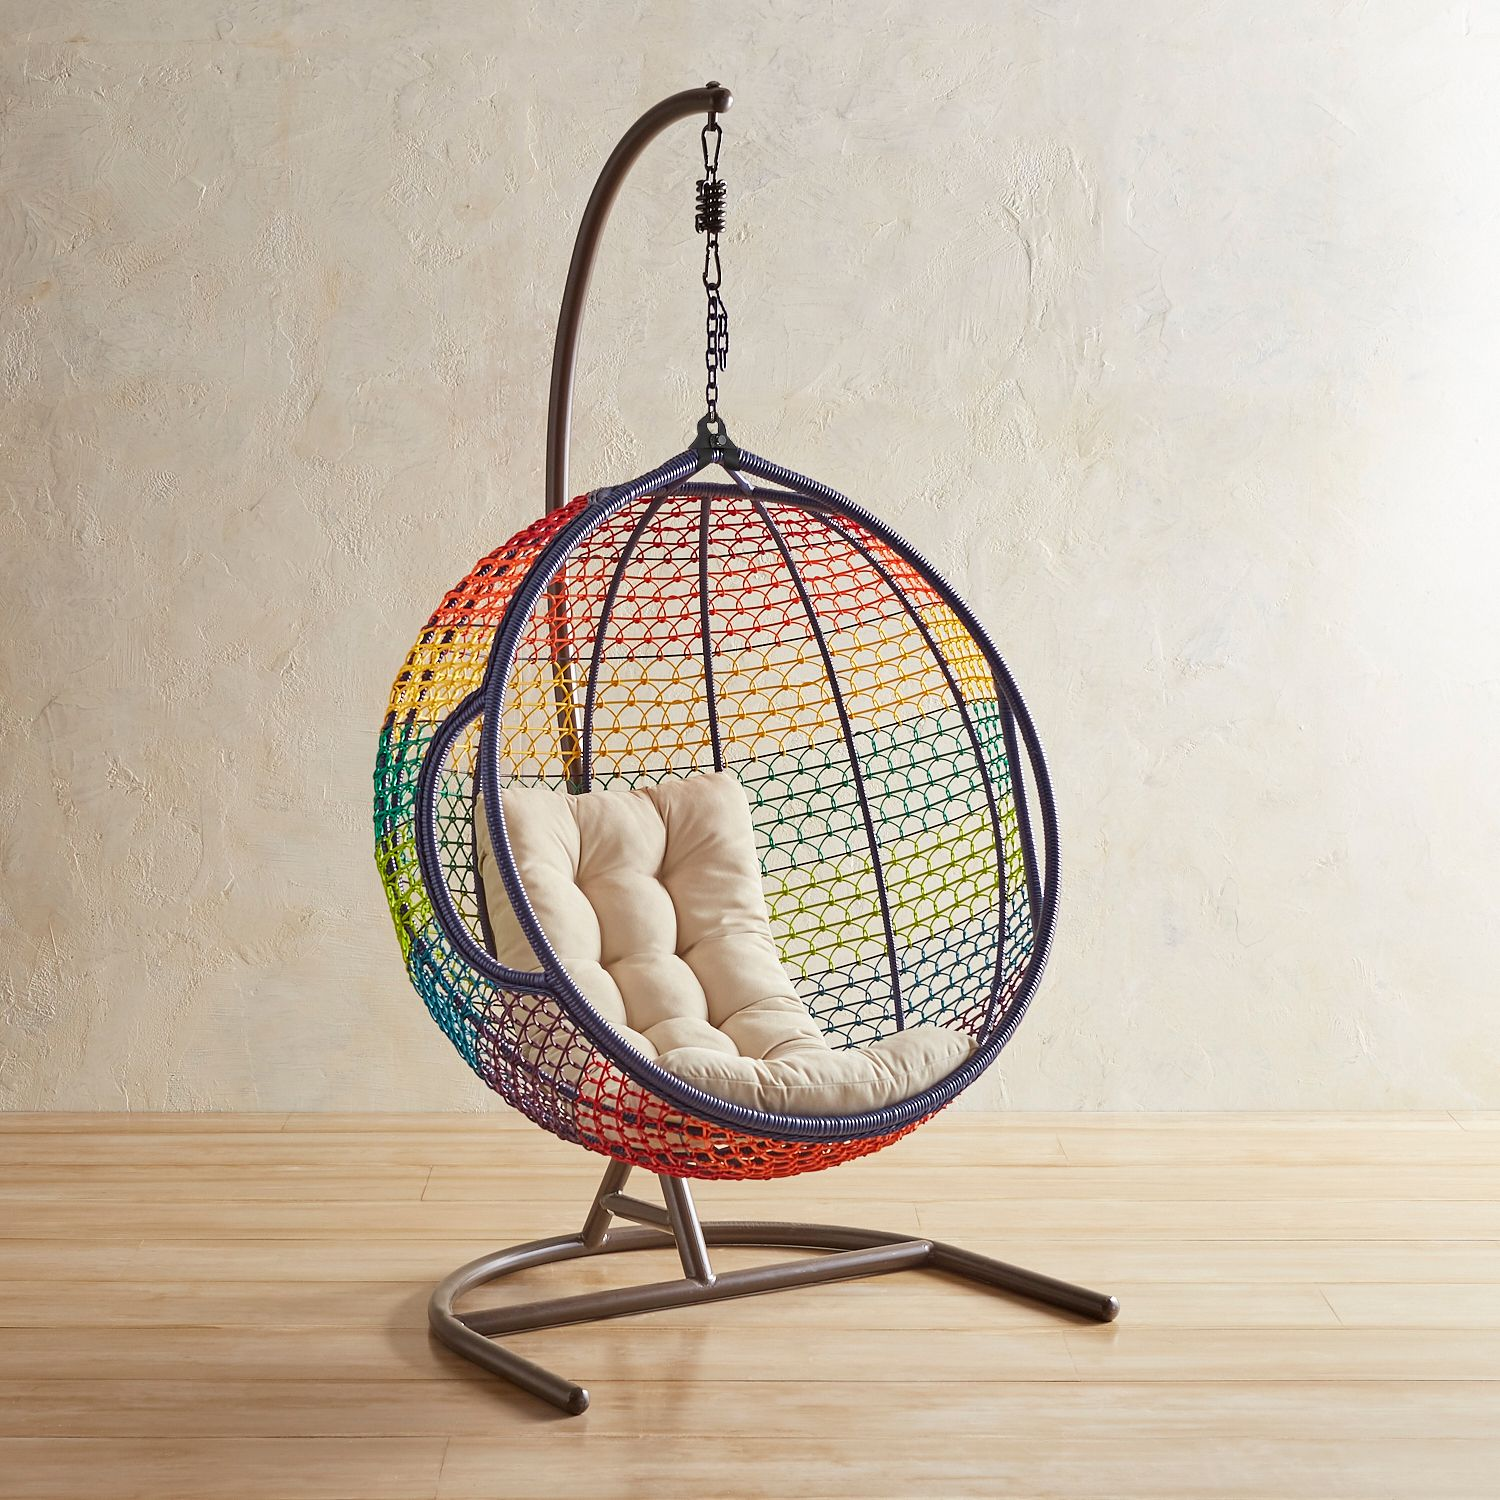 Rainbow hanging chair from Pier 1